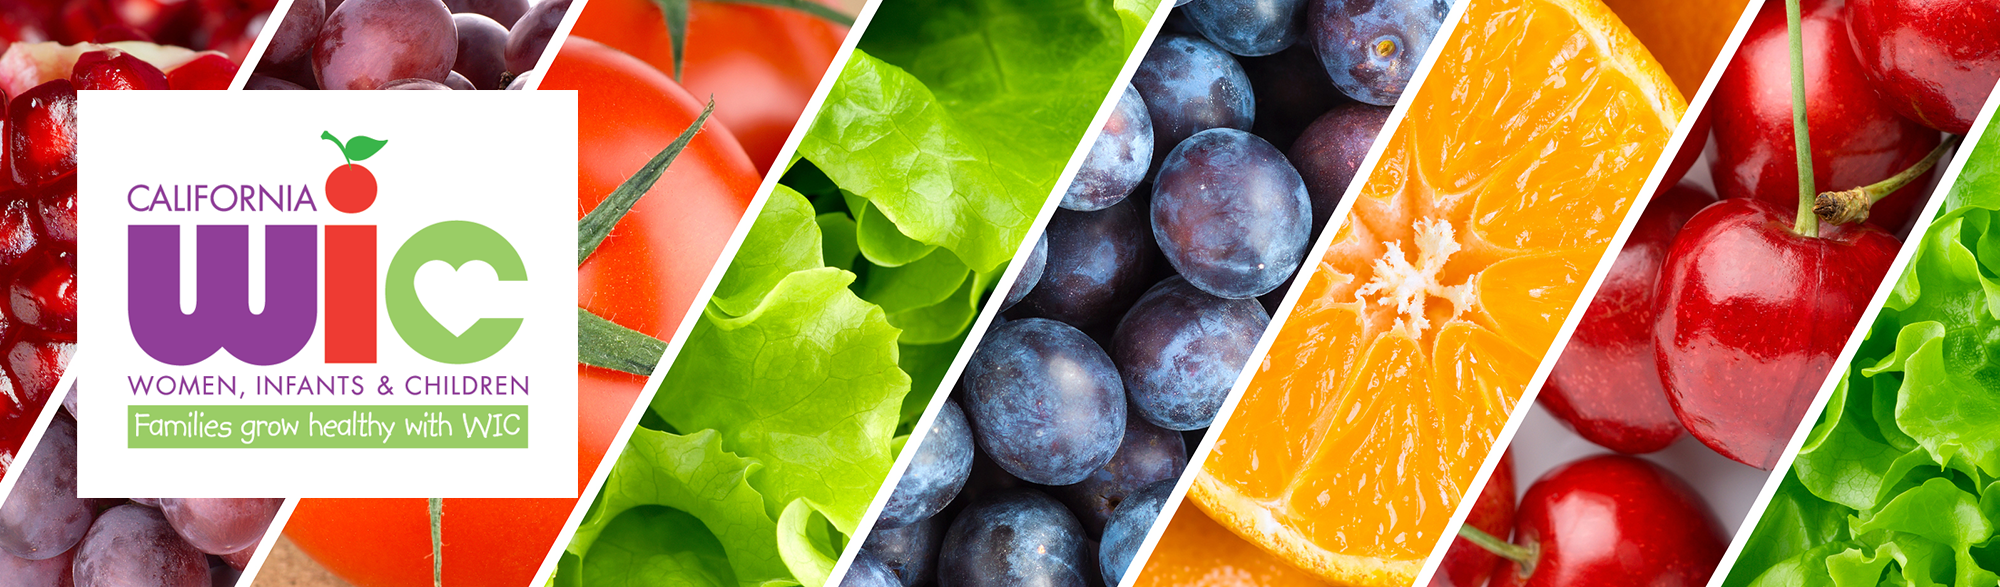 fruit and vegetables banner